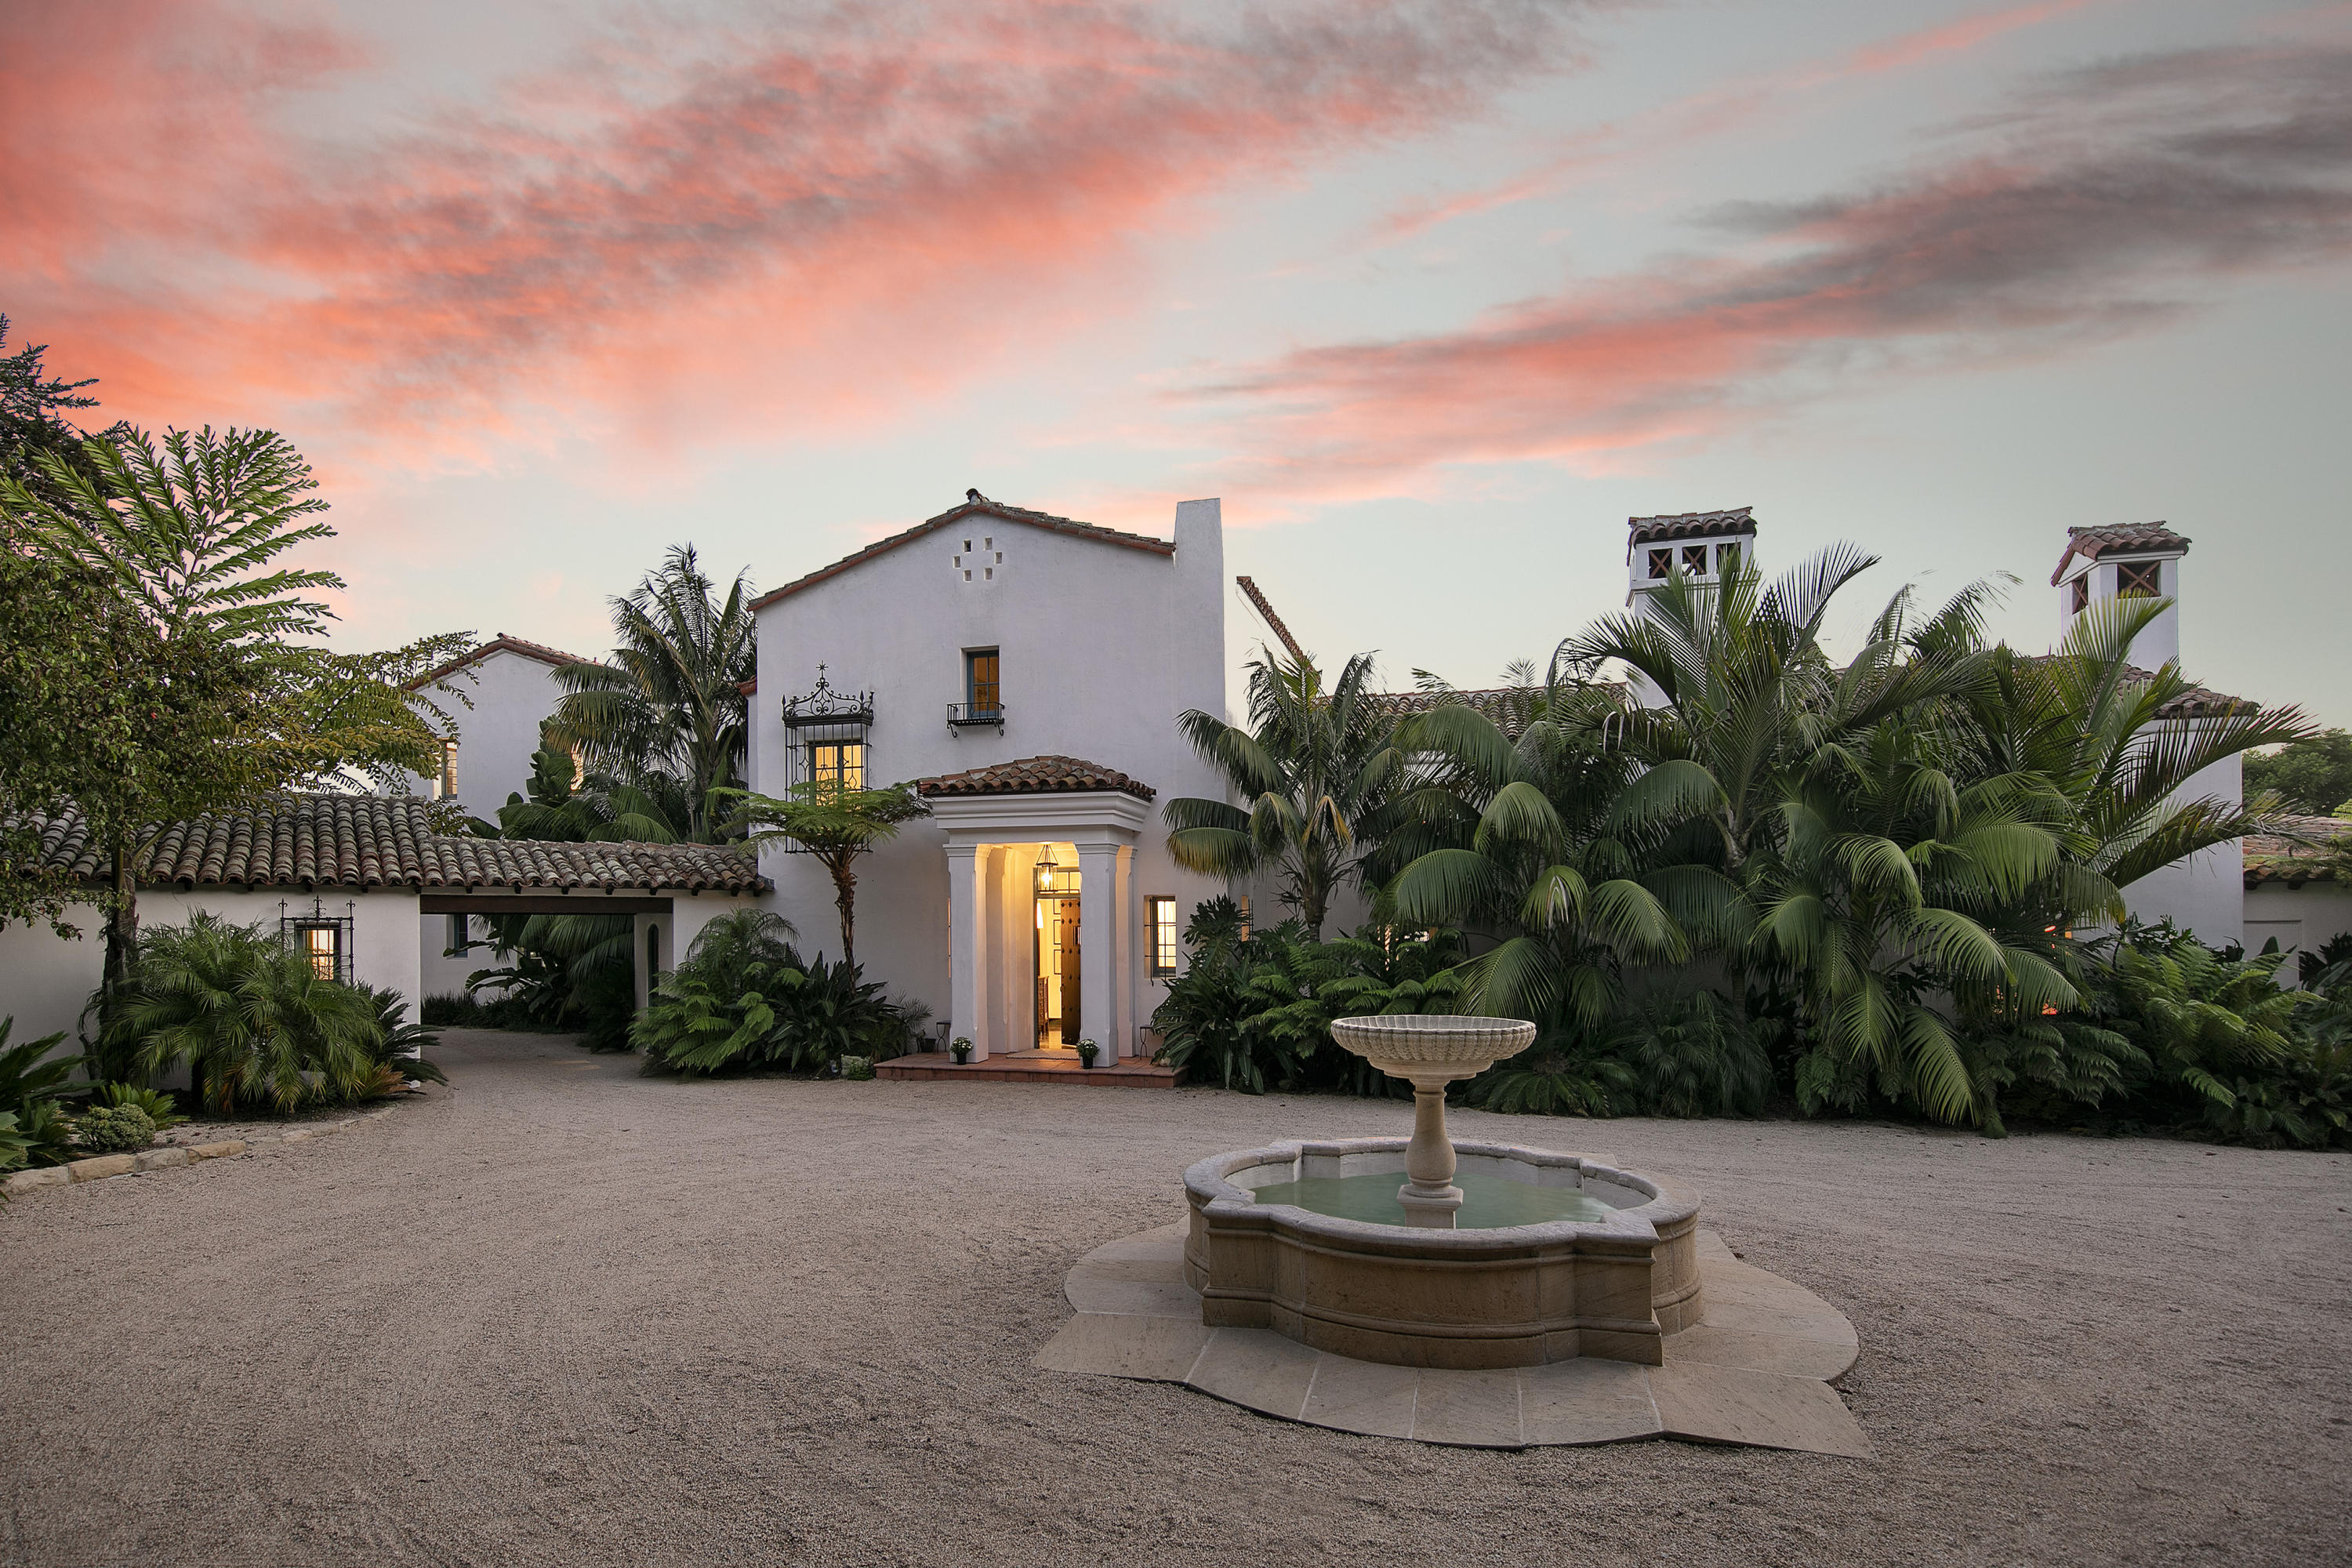 4225  Cresta Ave, Santa Barbara, California